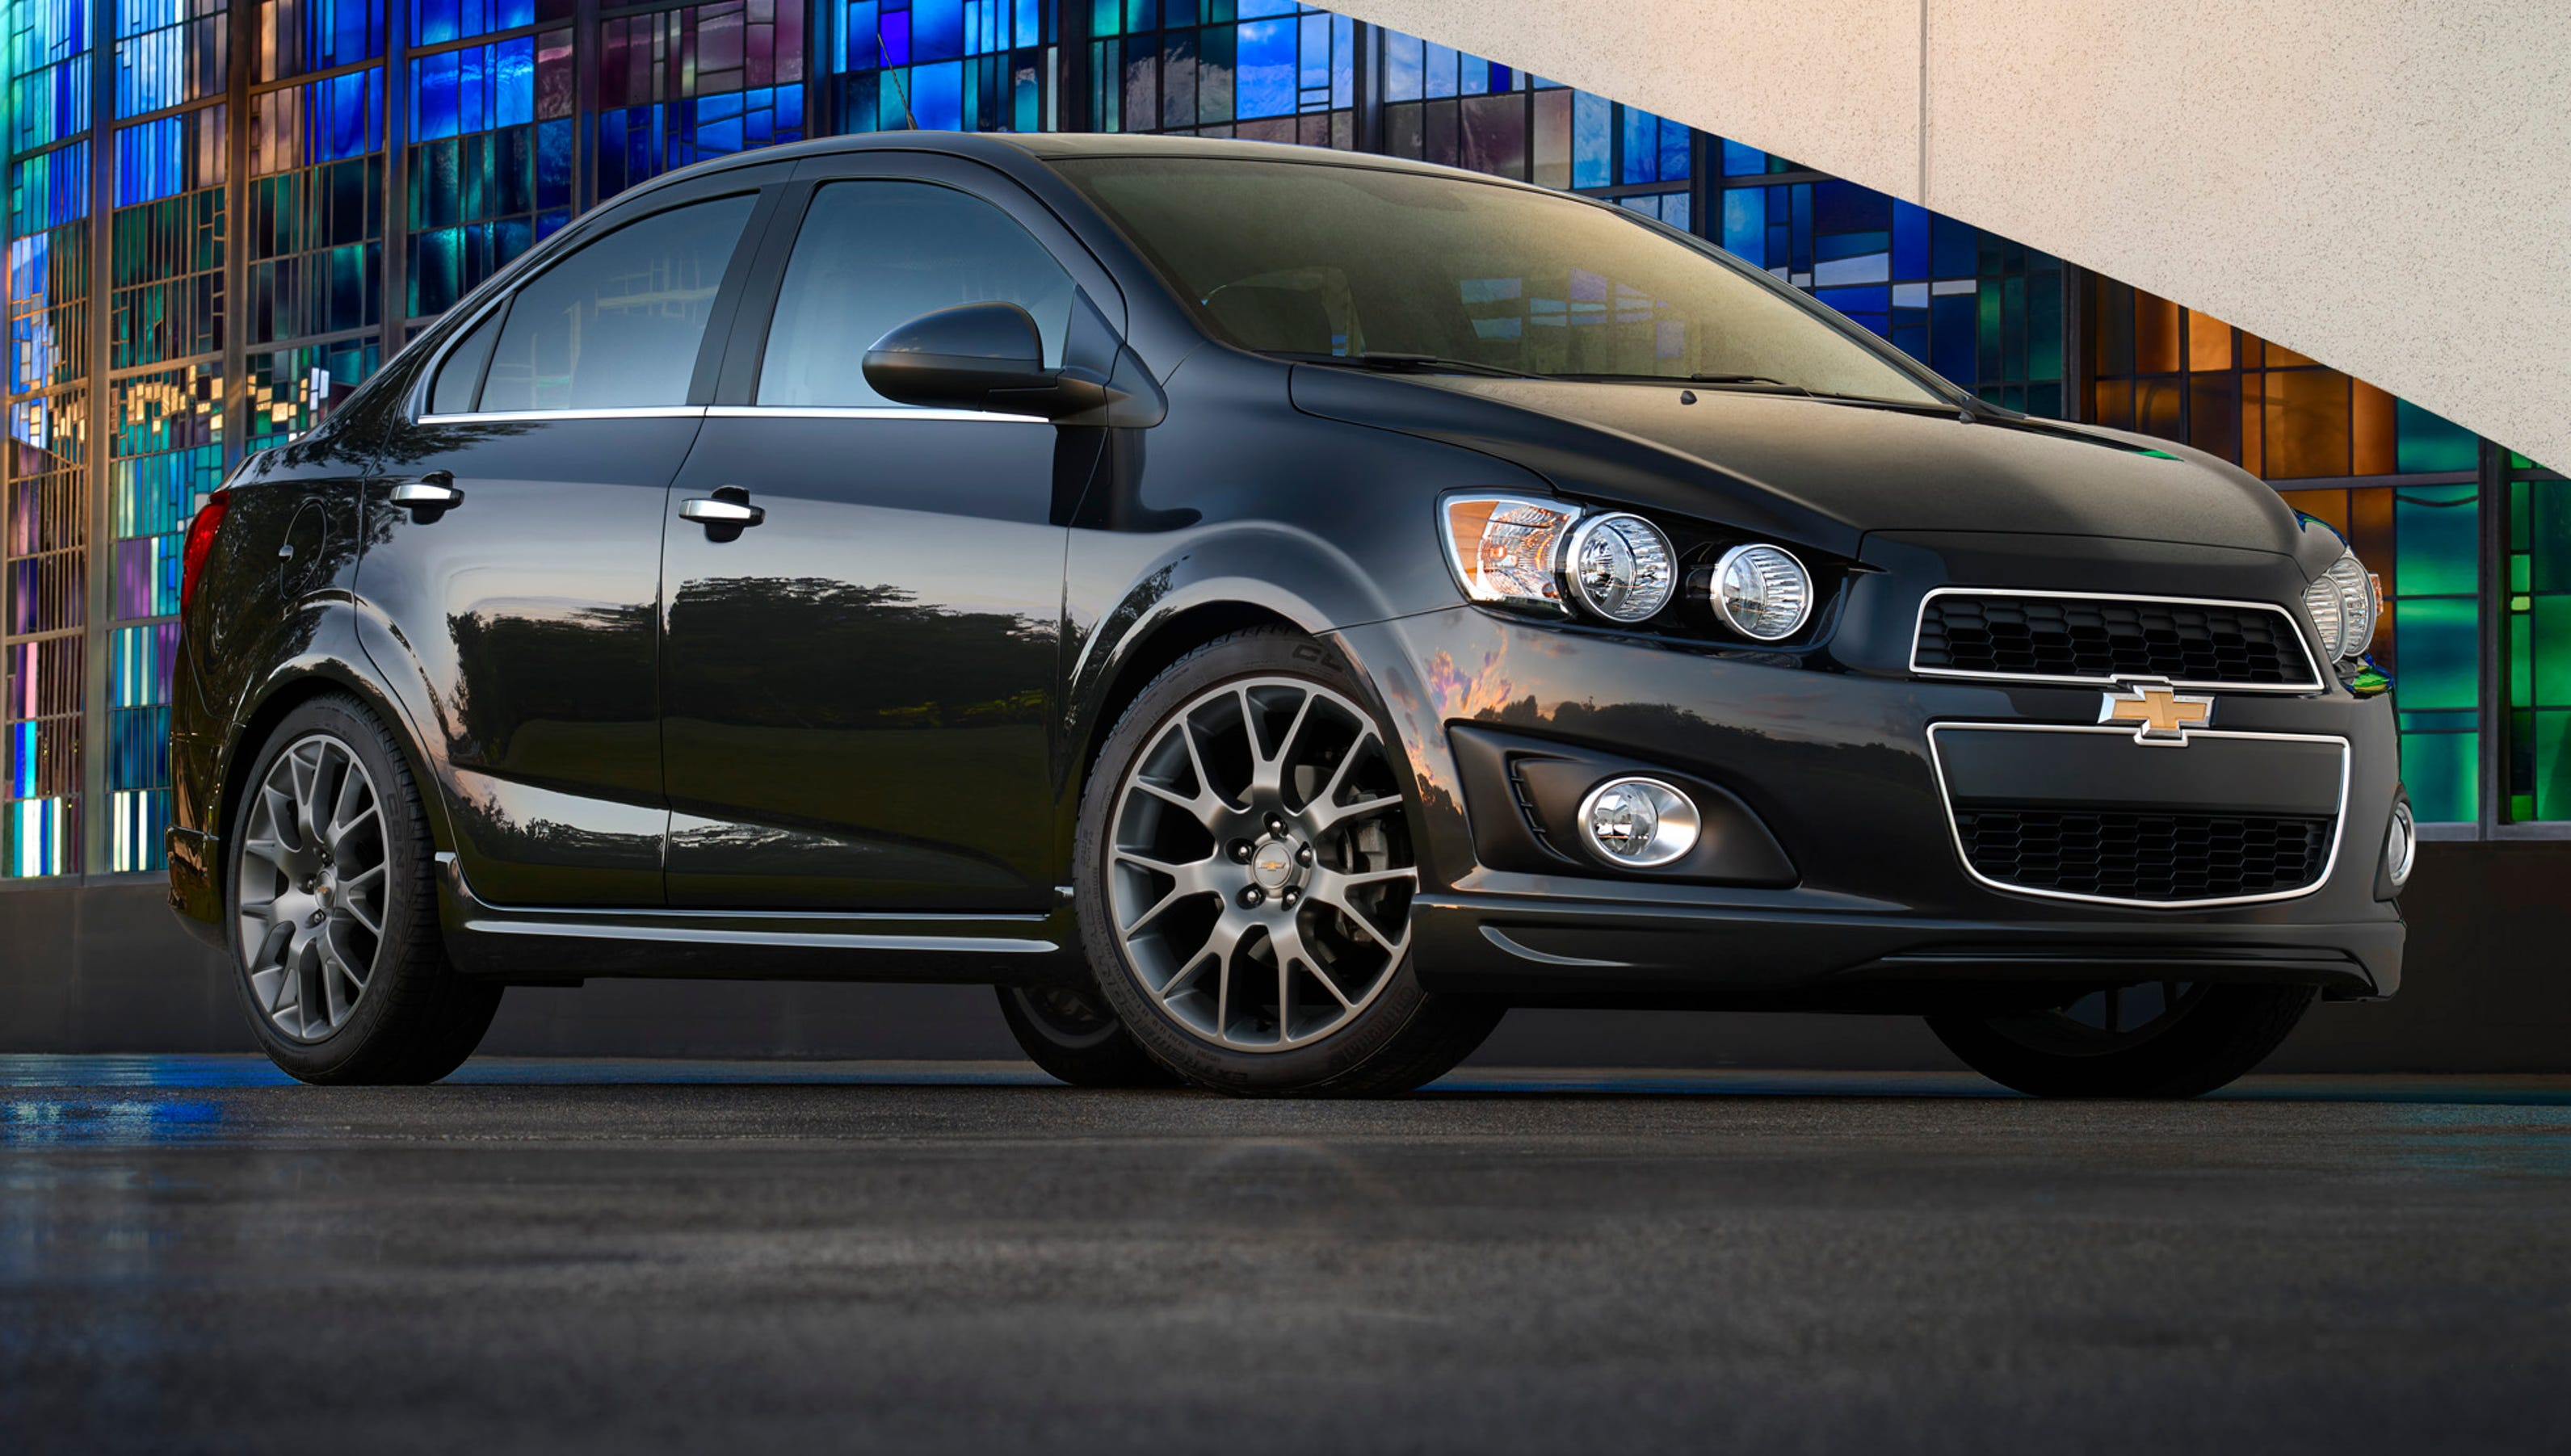 2014 chevy sonic autos weblog. Black Bedroom Furniture Sets. Home Design Ideas